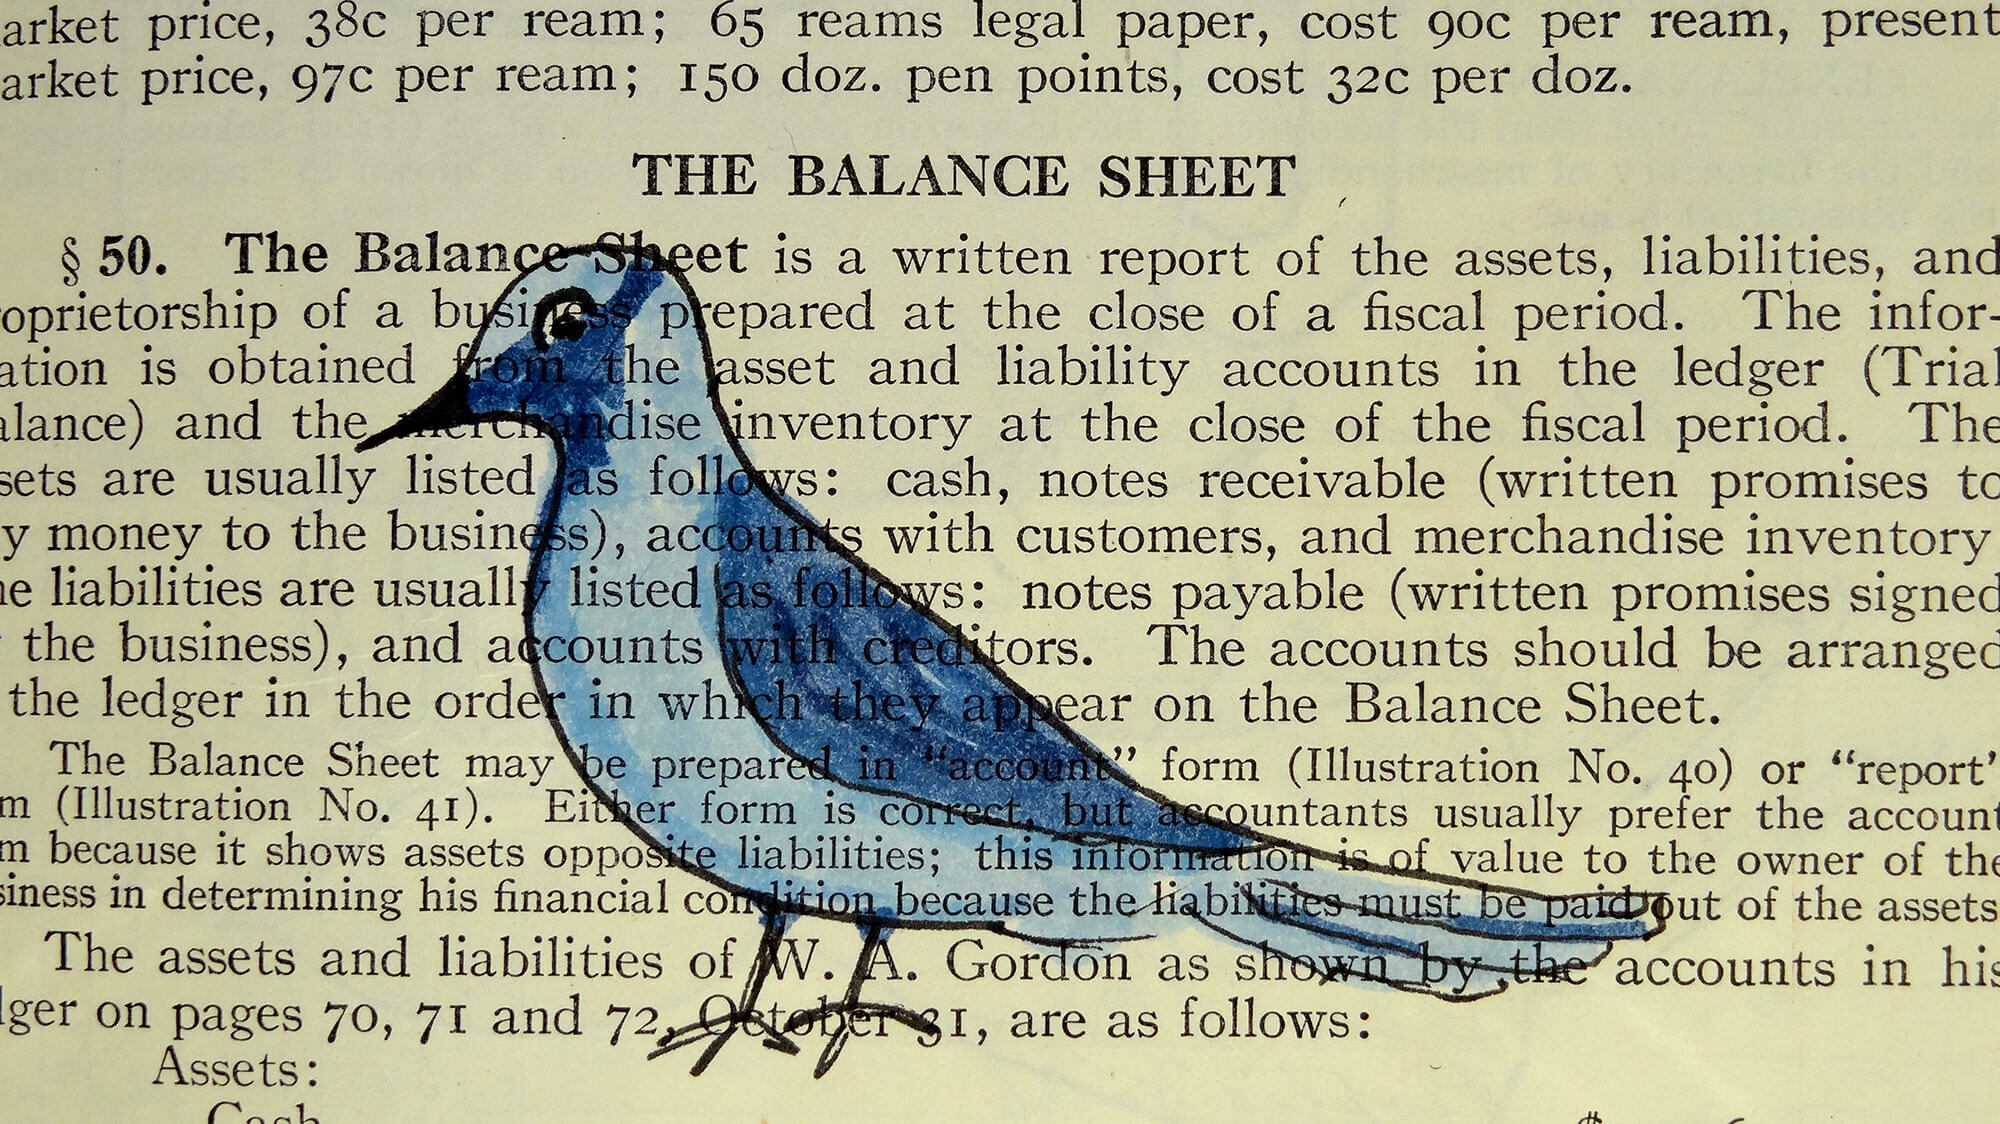 Drawing of a bird on a newspaper page